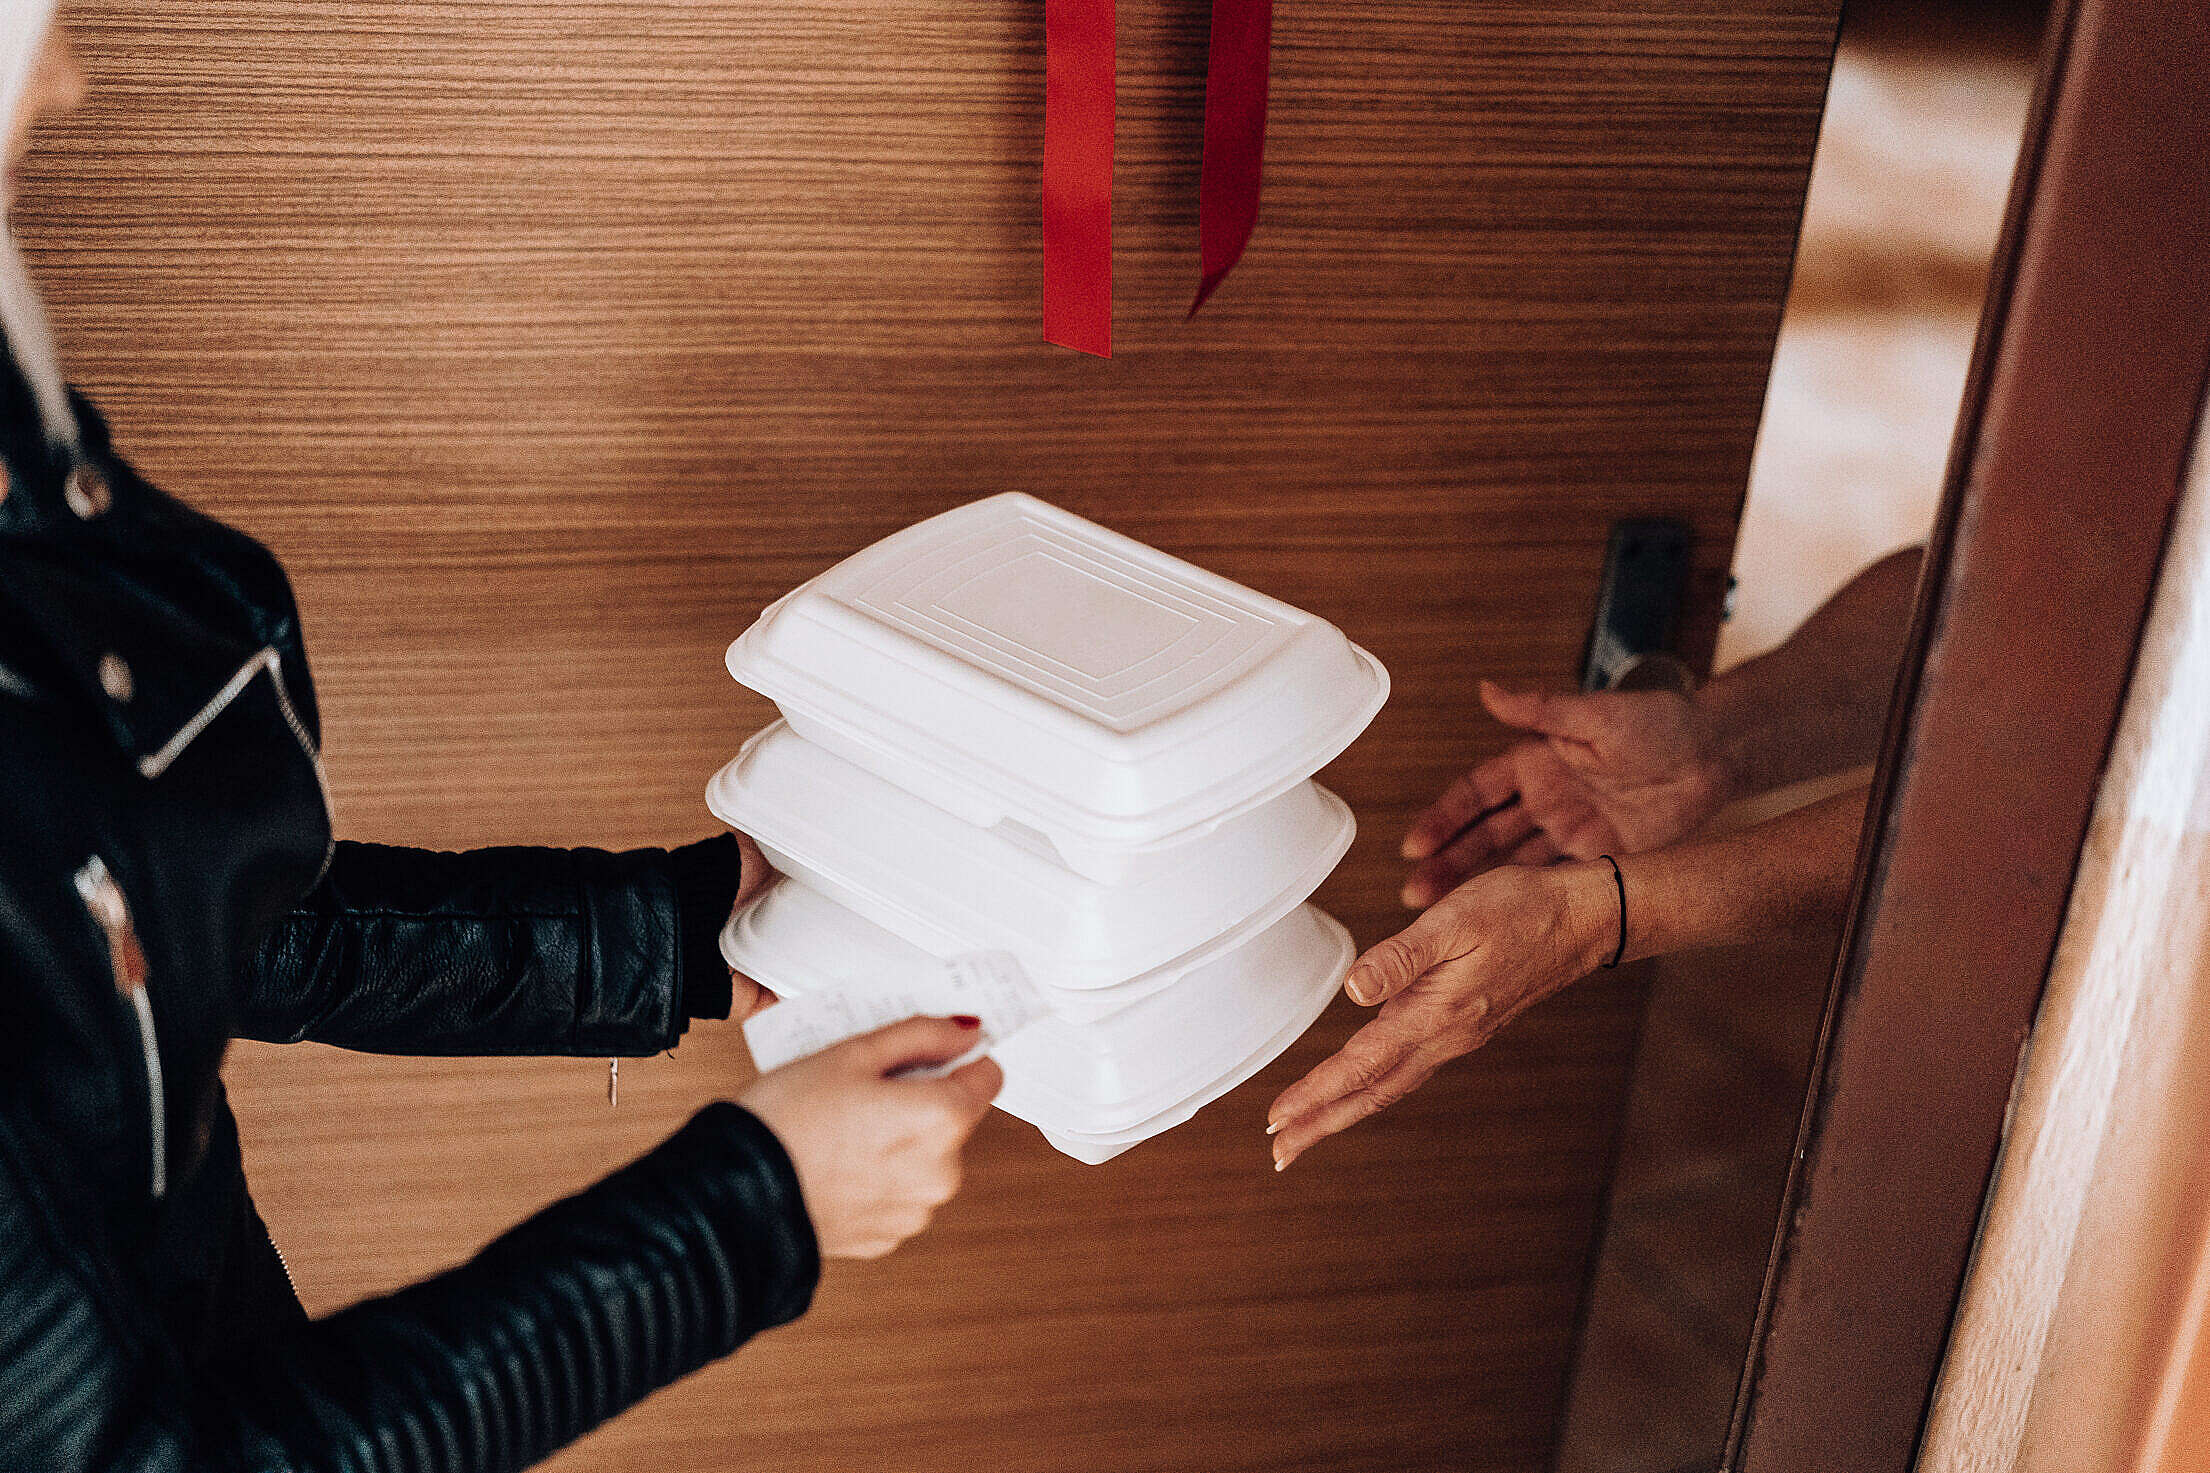 Woman Handing over Ordered Boxes with Food Free Stock Photo